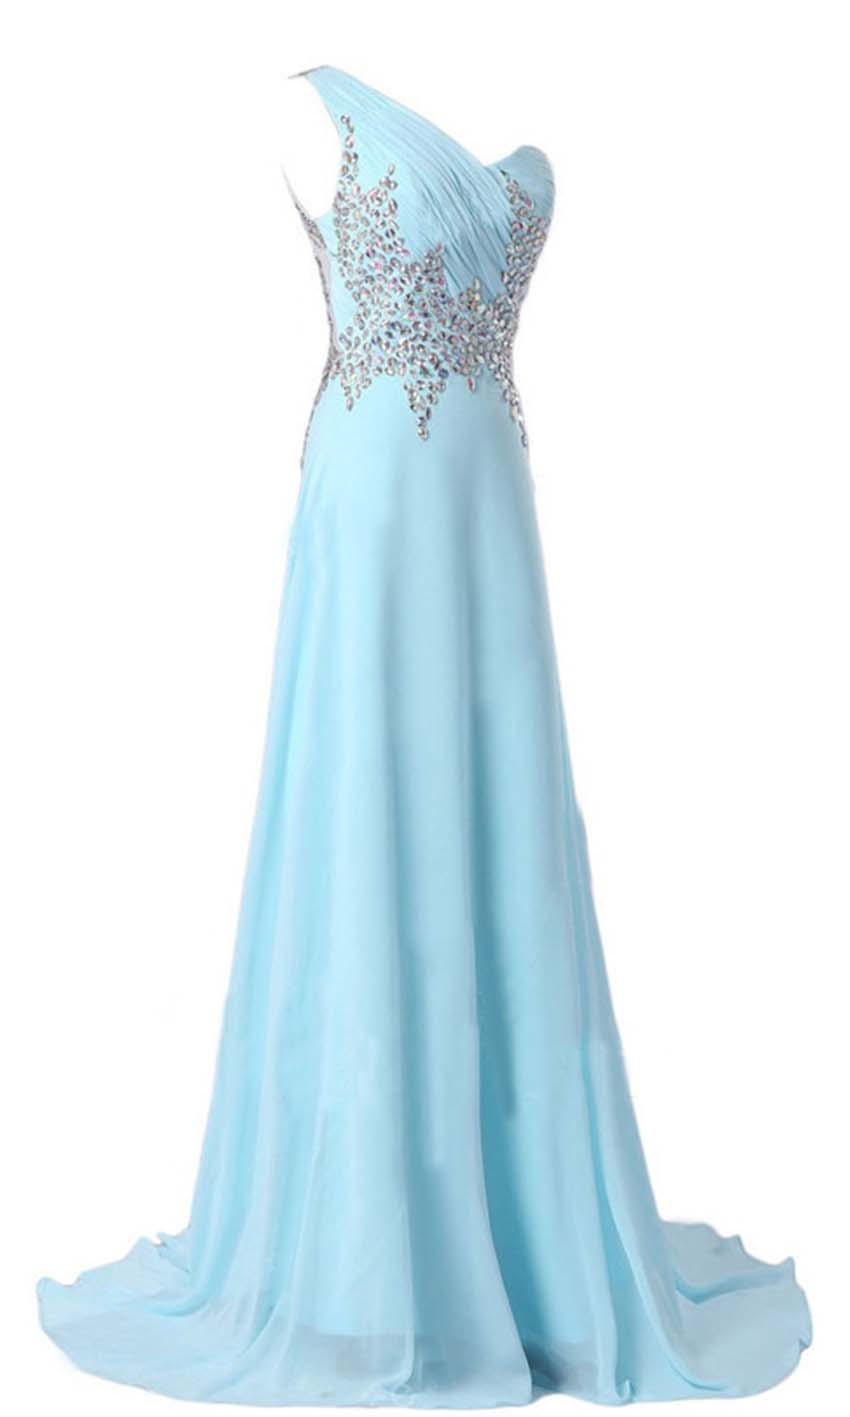 Light Blue One Should Zigzag Sequin Long Formal Dresses KSP369 [KSP369] - £104.00 : Cheap Prom Dresses Uk, Bridesmaid Dresses, 2014 Prom & Evening Dresses, Look for cheap elegant prom dresses 2014, cocktail gowns, or dresses for special occasions? kissprom.co.uk offers various bridesmaid dresses, evening dress, free shipping to UK etc.